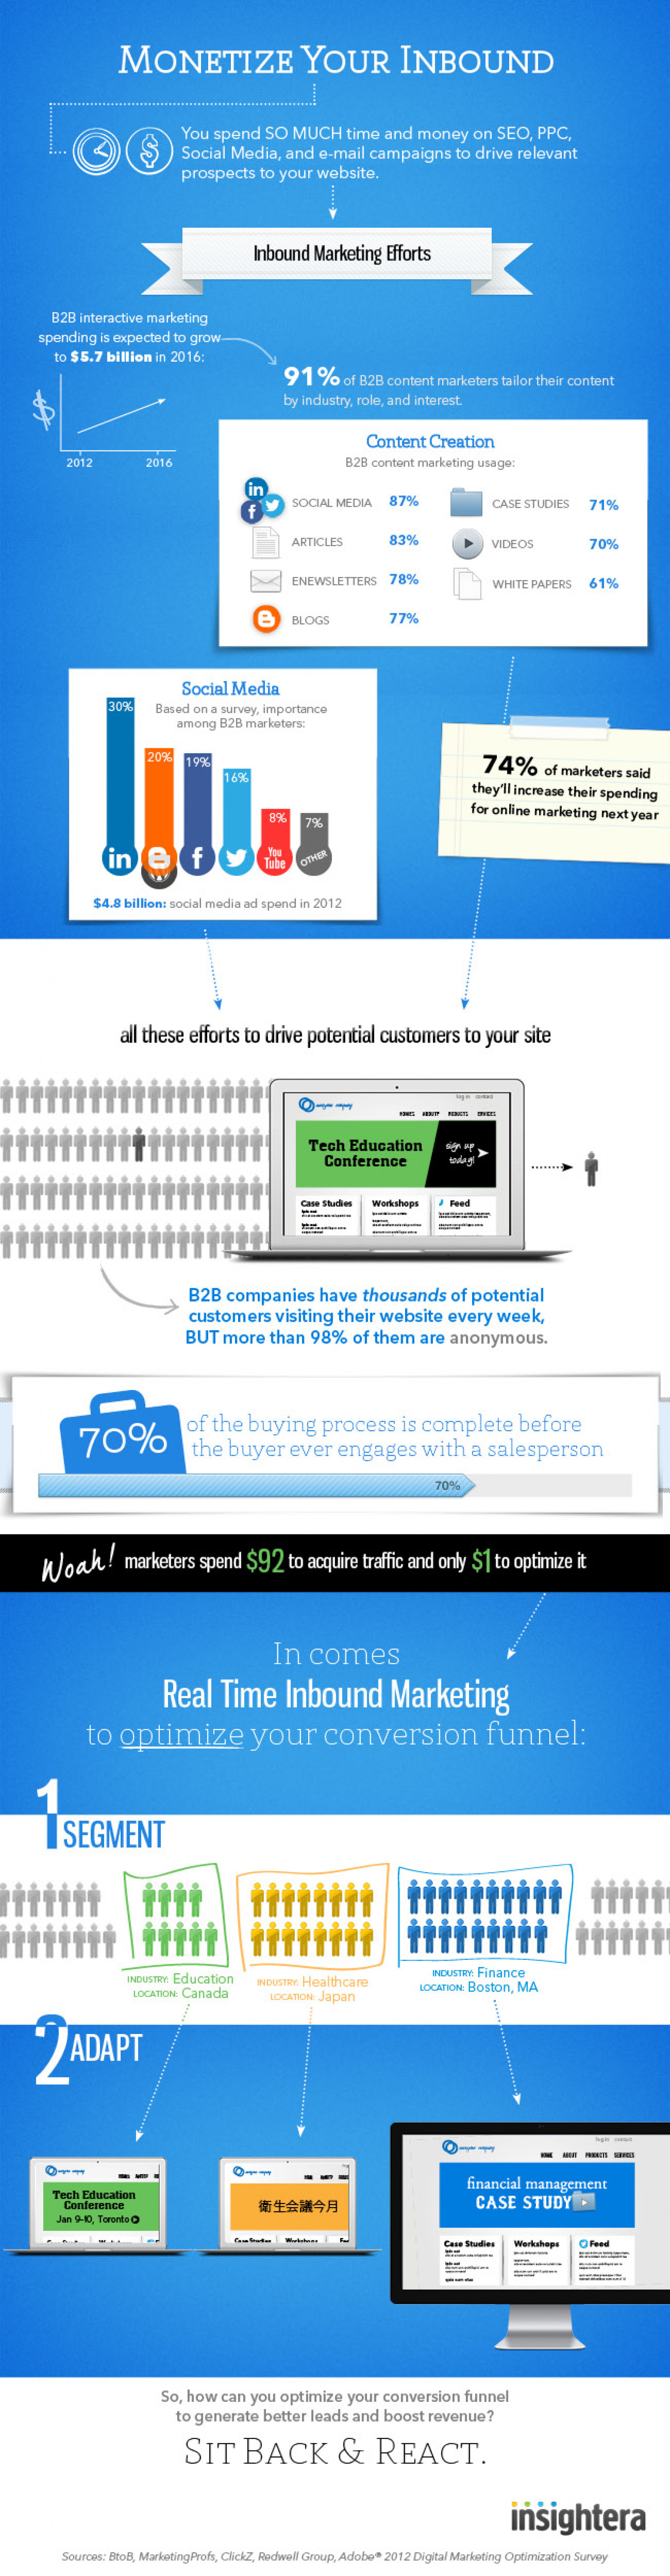 Real-time Inbound Marketing Infographic